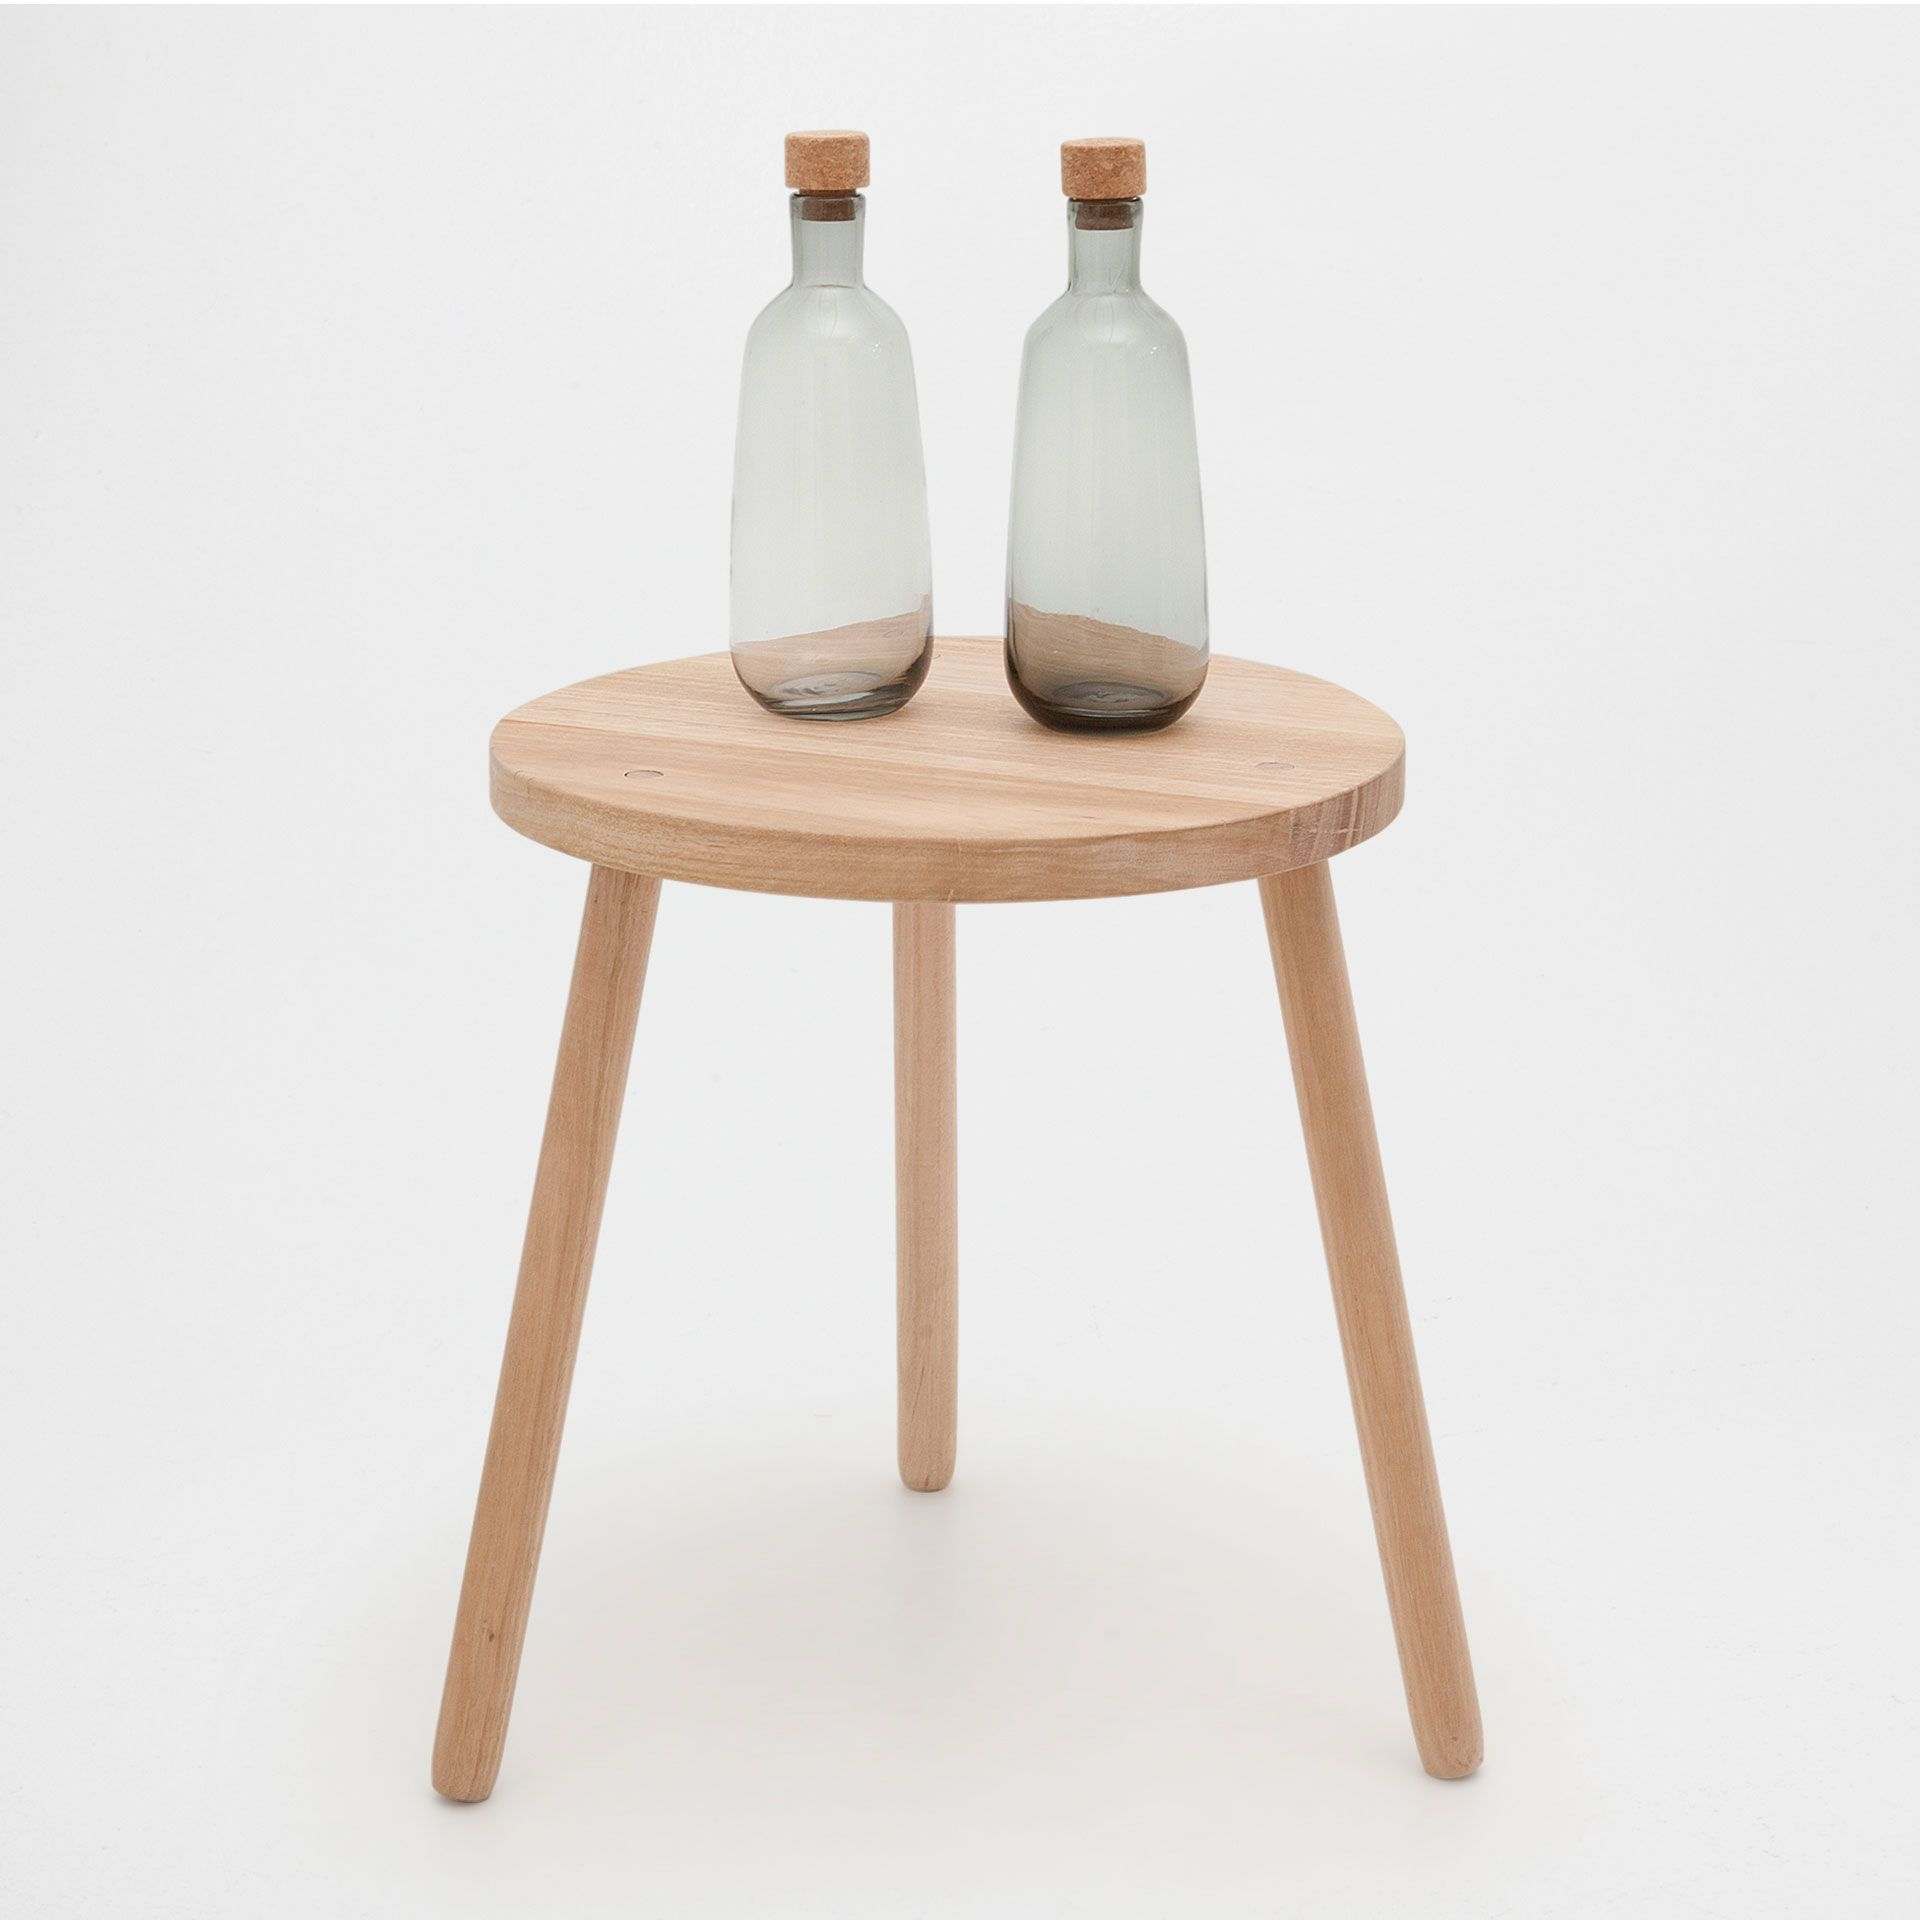 Image 1 of the product three legged side table